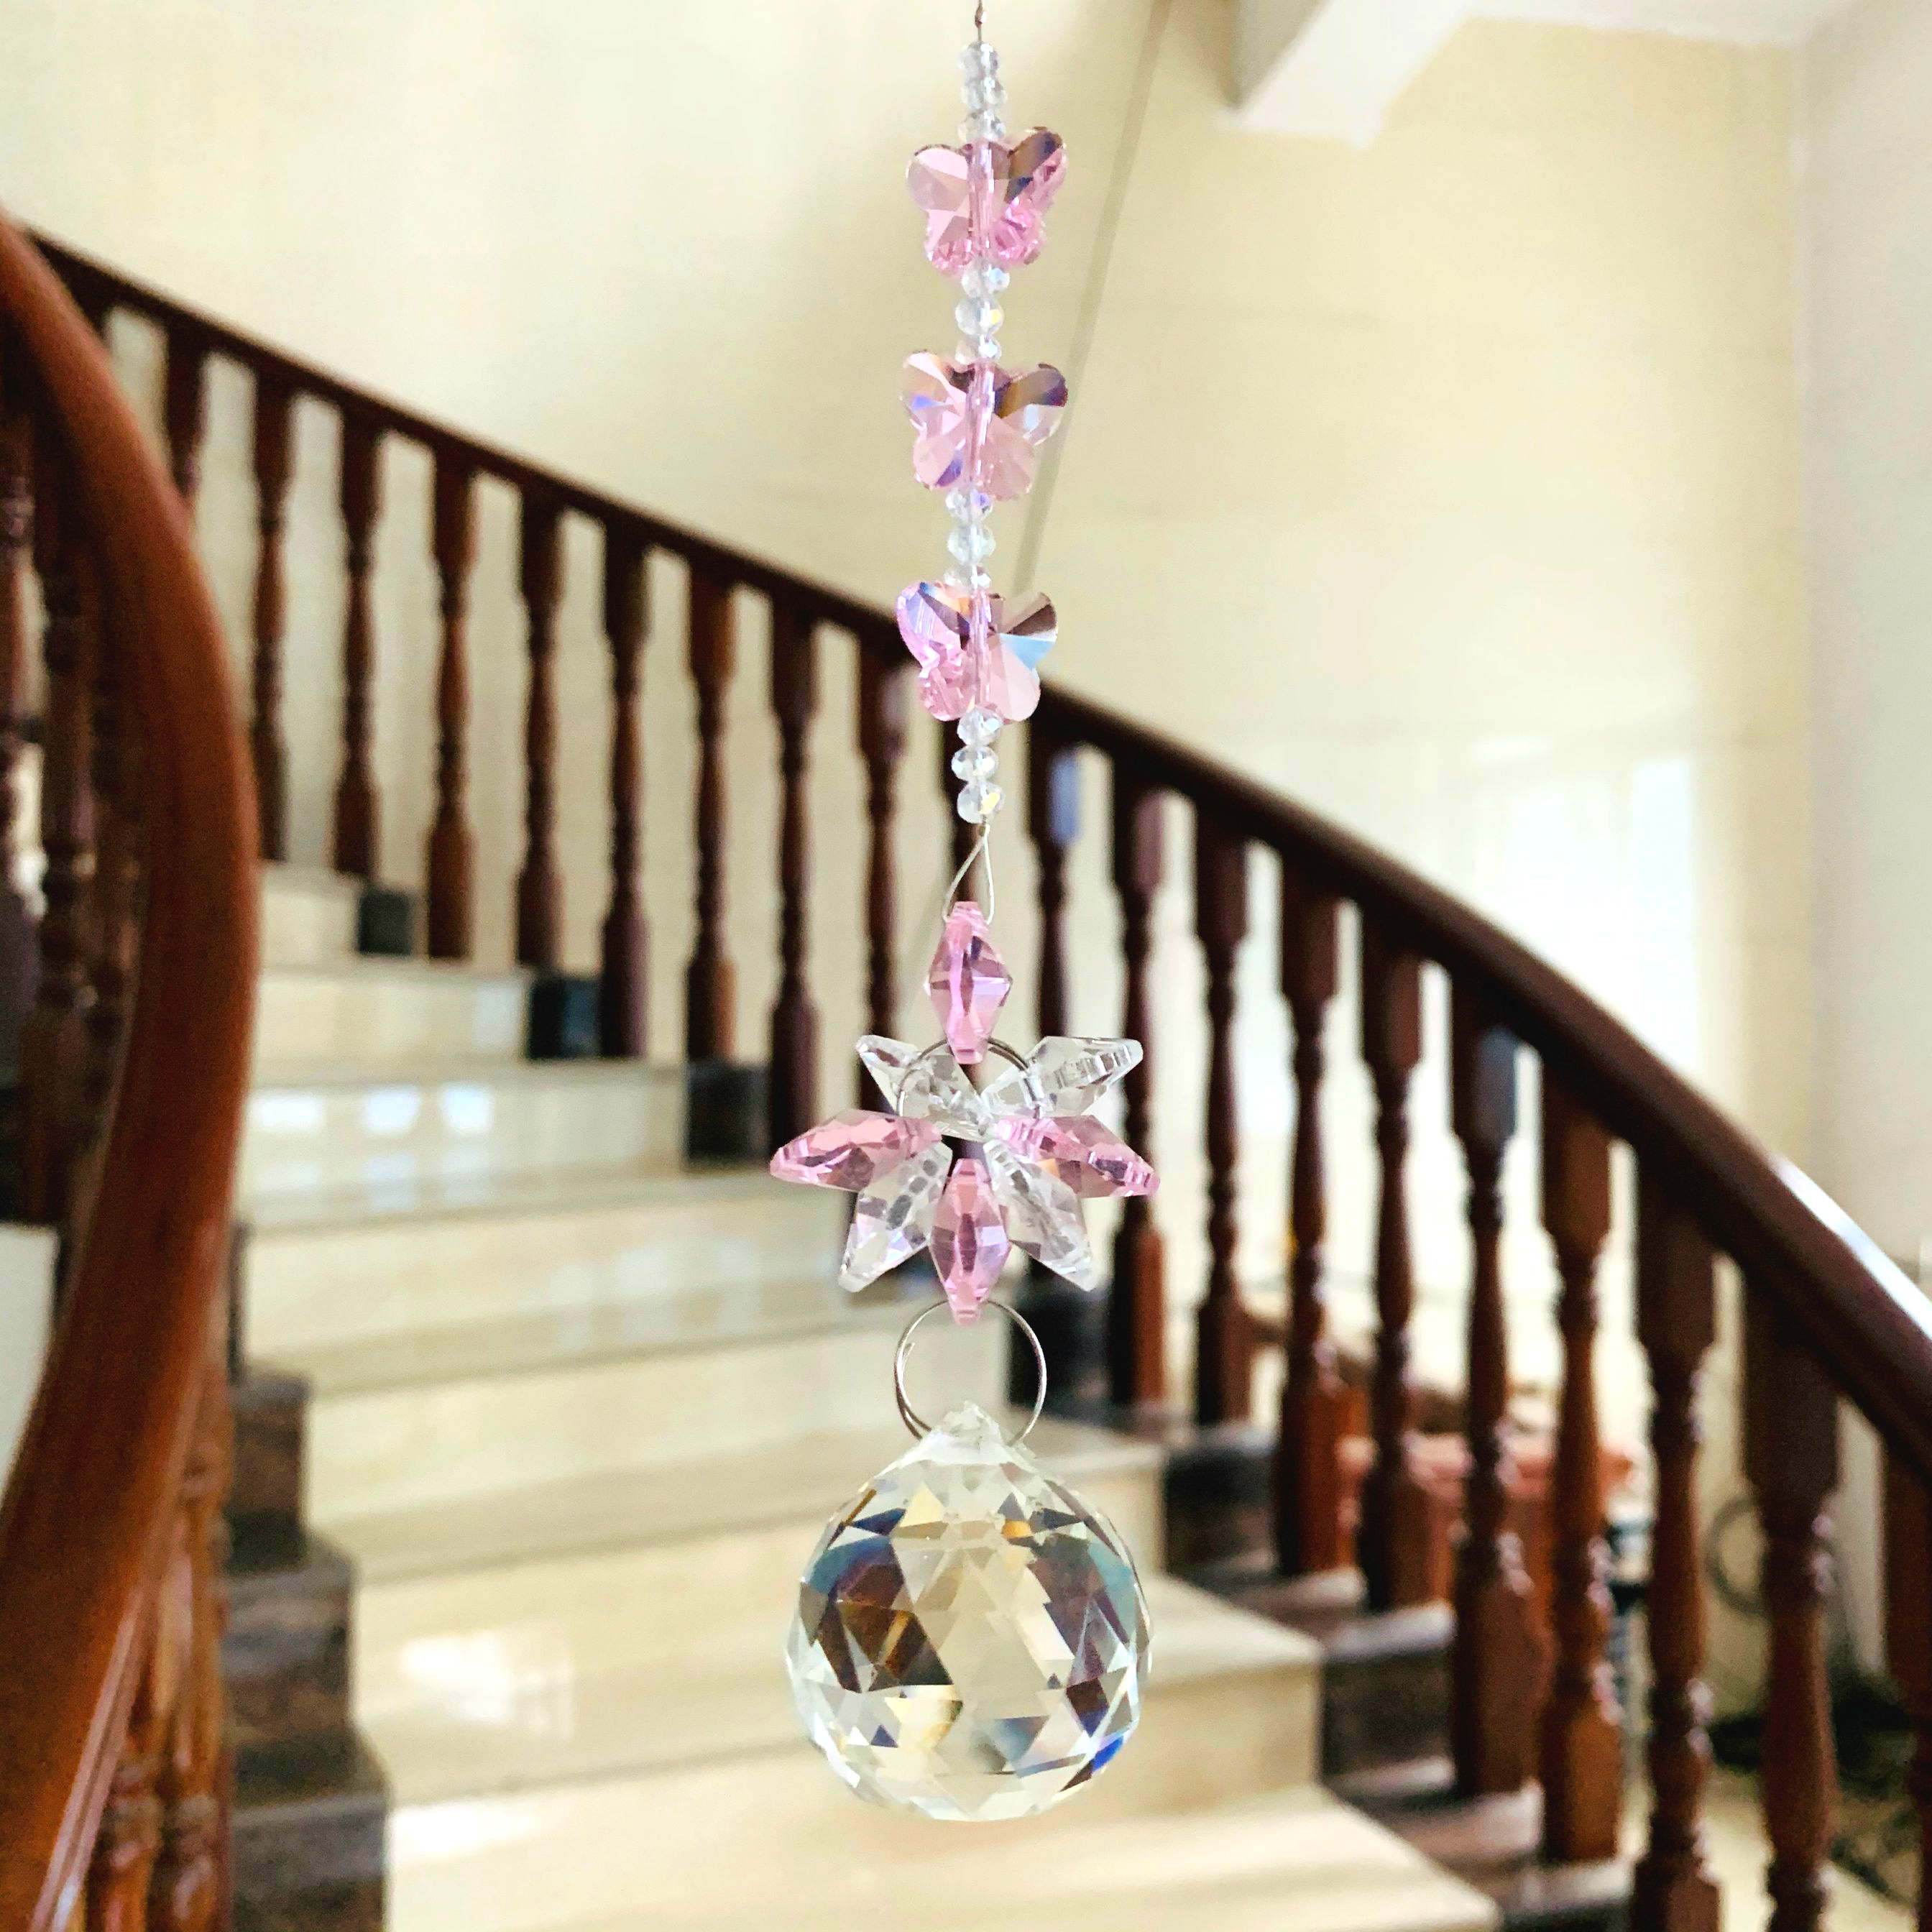 Image of: Garland Pink Crystal Diy Chandelier Crystals Glass Suncatcher Crystal Prisms Pendant For Home Decor Christmas Tree Hanging Drops Chandelier Crystal Aliexpress